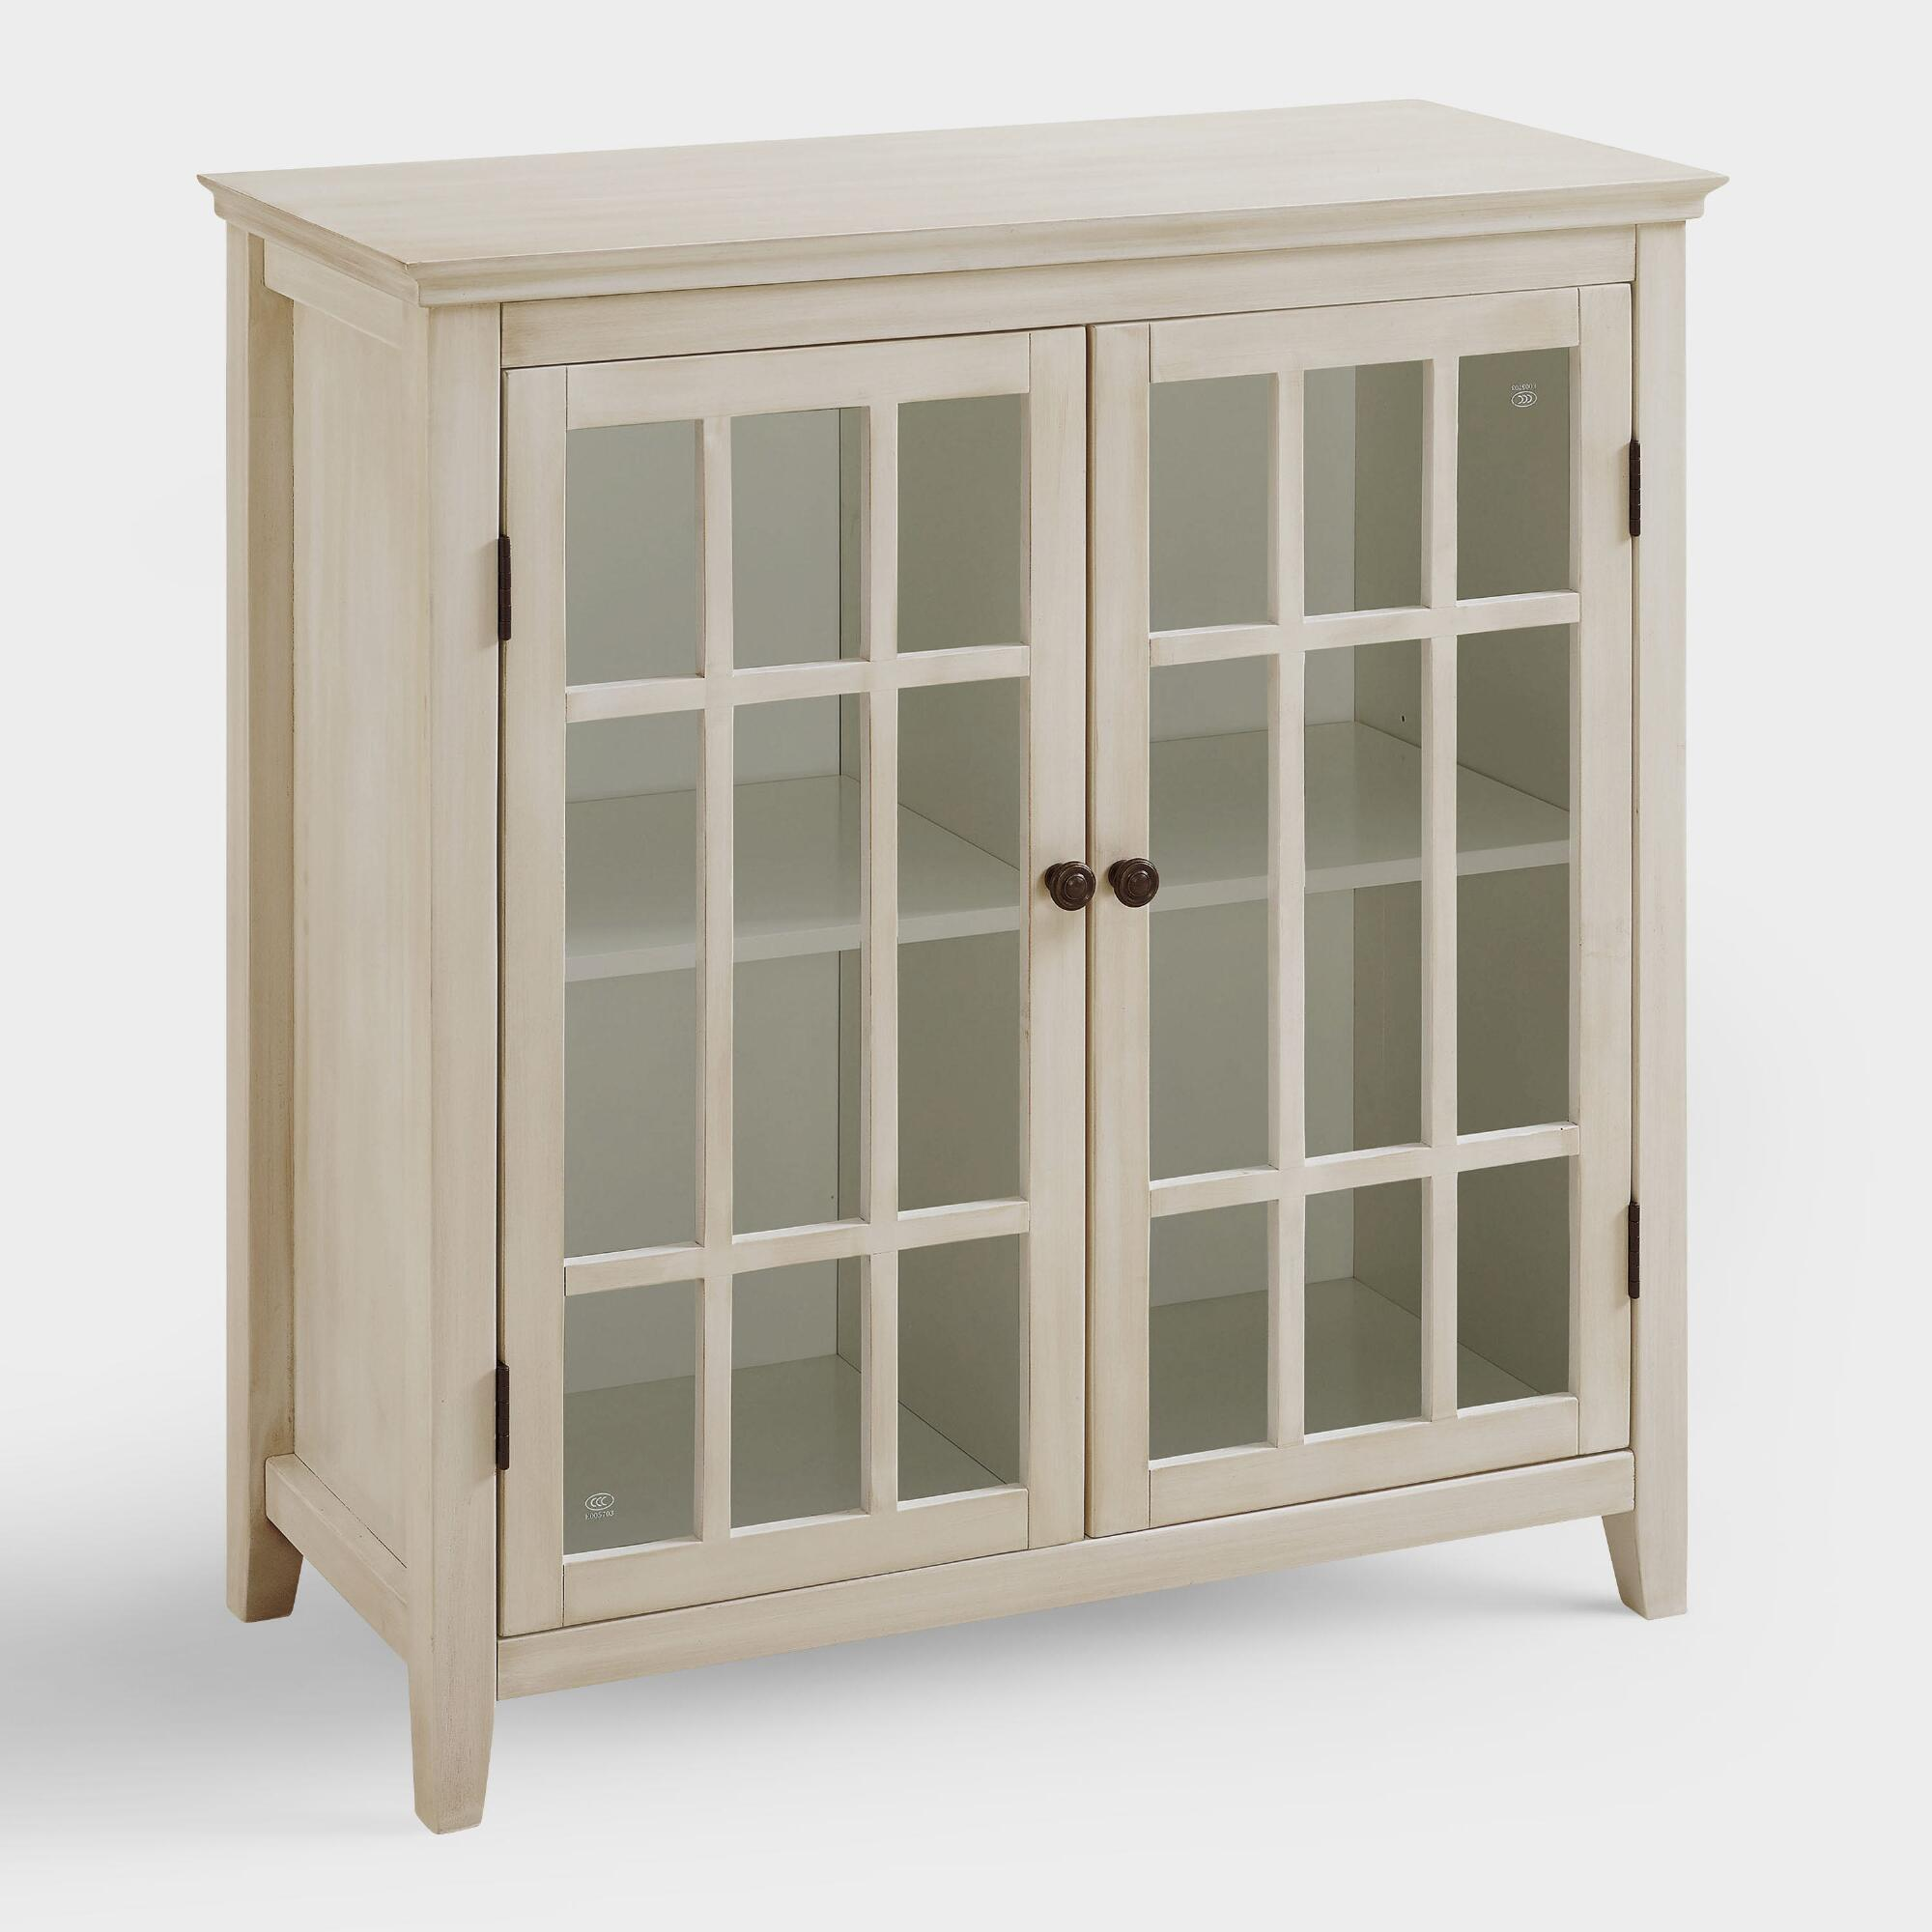 Antique white double door storage cabinet world market for White kitchen storage cabinets with doors